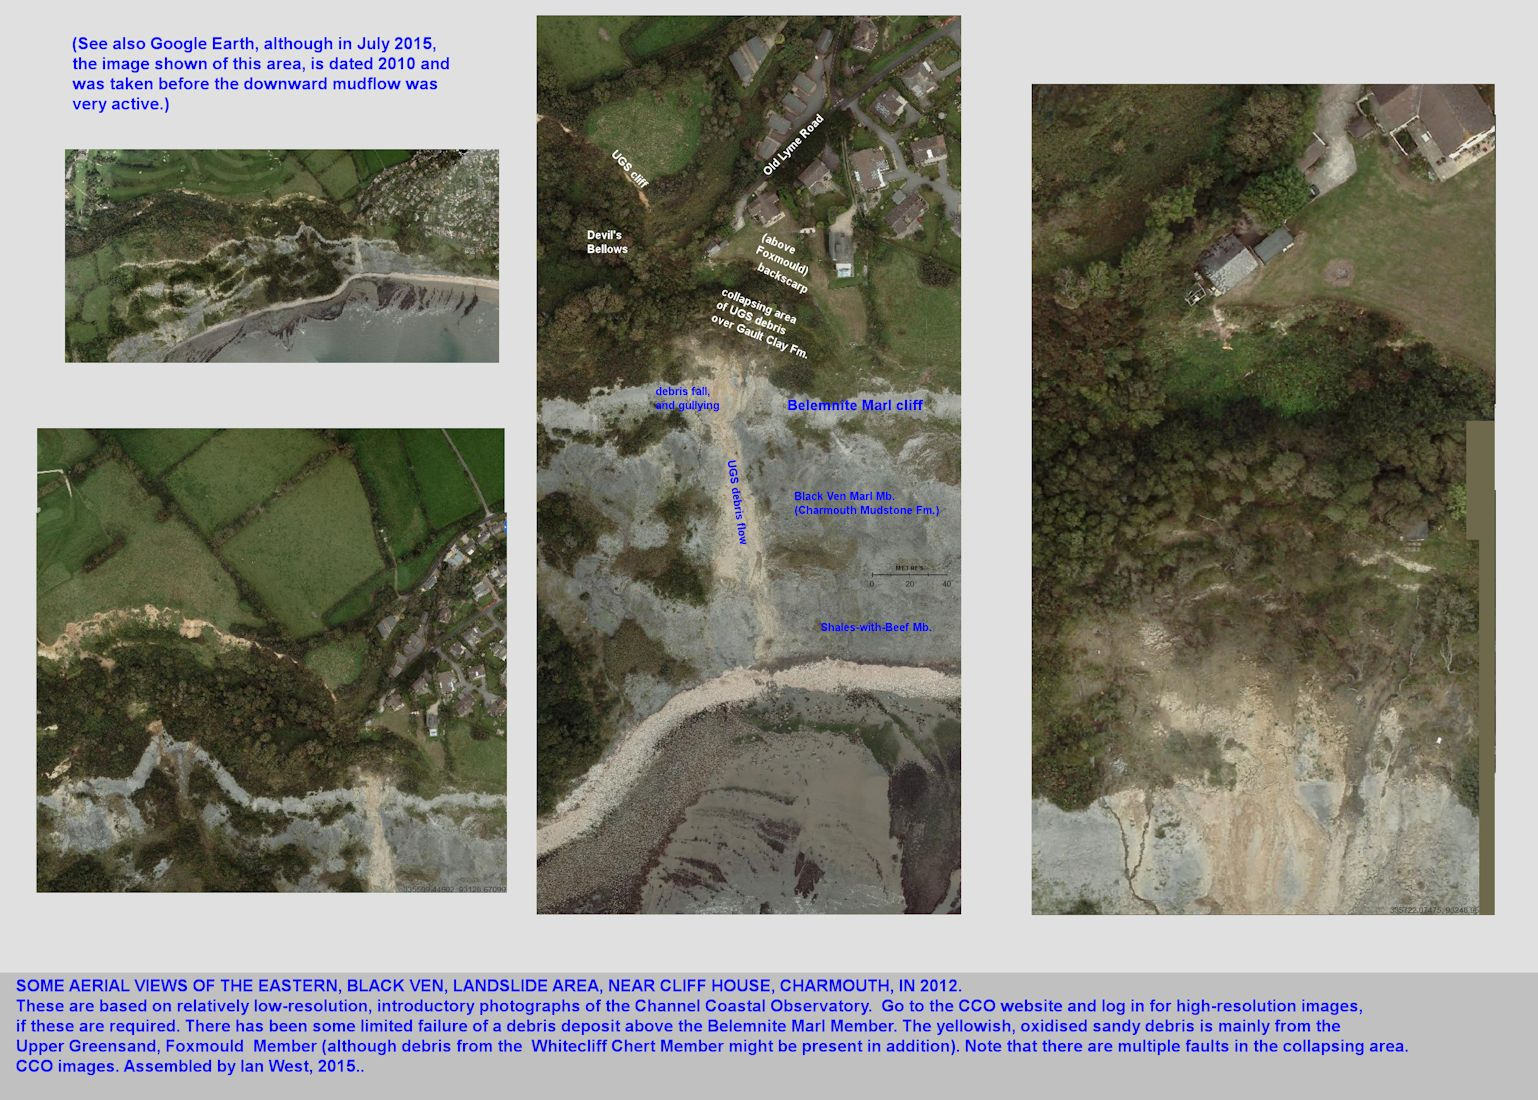 Aerial photographs showing mud-flow and seepage from the secondary reservoir in the Cliff House area, eastern end of Black Ven landslide, Charmouth, Dorset in 2012